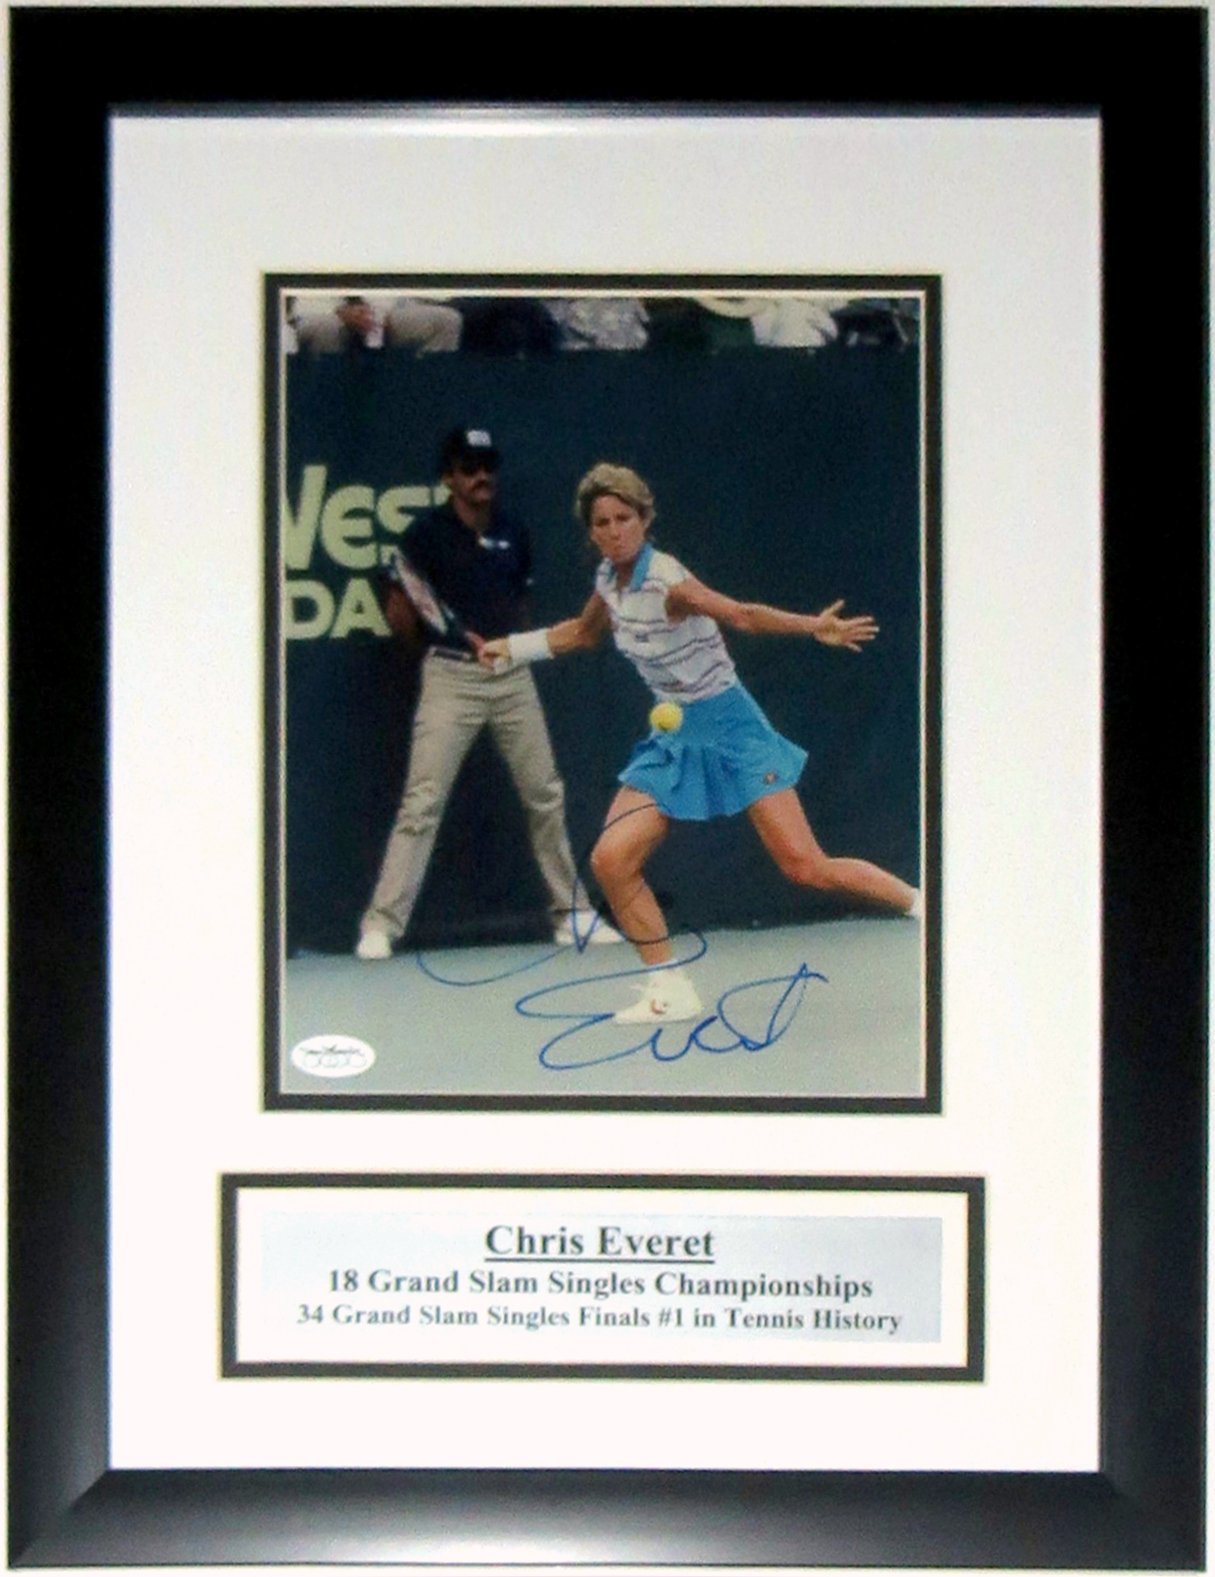 Chris Evert Autographed 8x10 Photo - JSA COA Authenticated - Professionally Framed & Plate